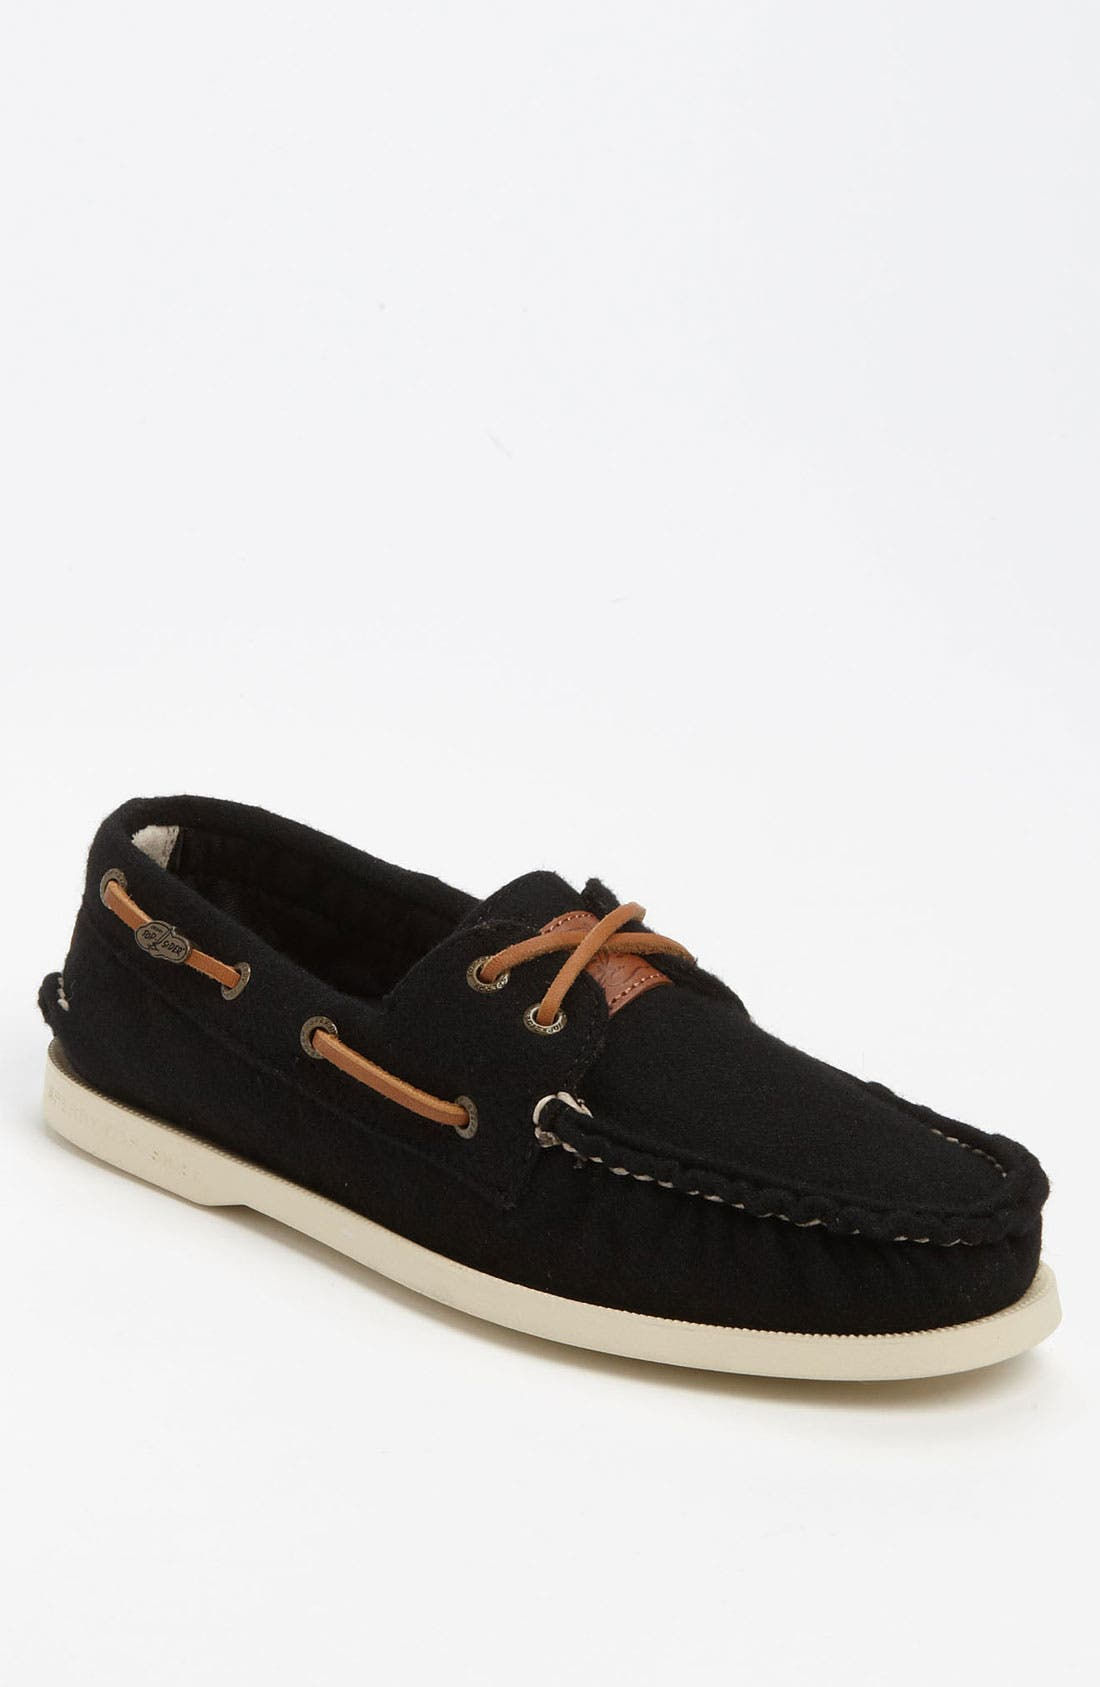 Alternate Image 1 Selected - Sperry Top-Sider® 'Fidelity - Authentic Original' Wool Boat Shoe